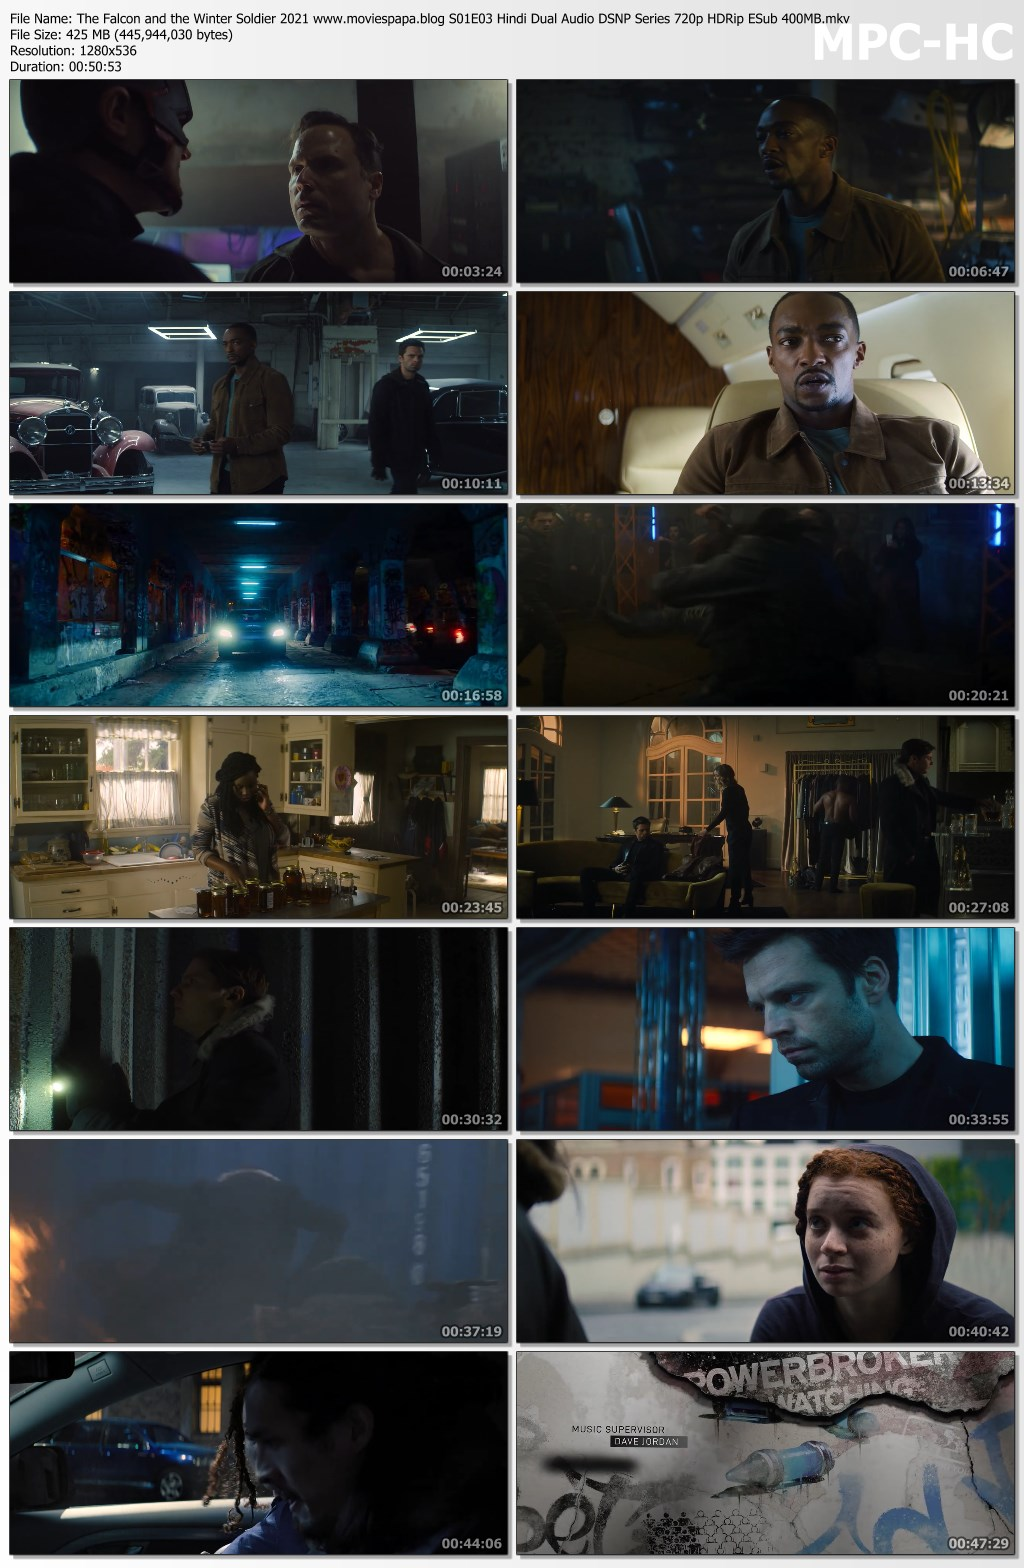 The Falcon and the Winter Soldier 2021 screenshot HDMoviesFair